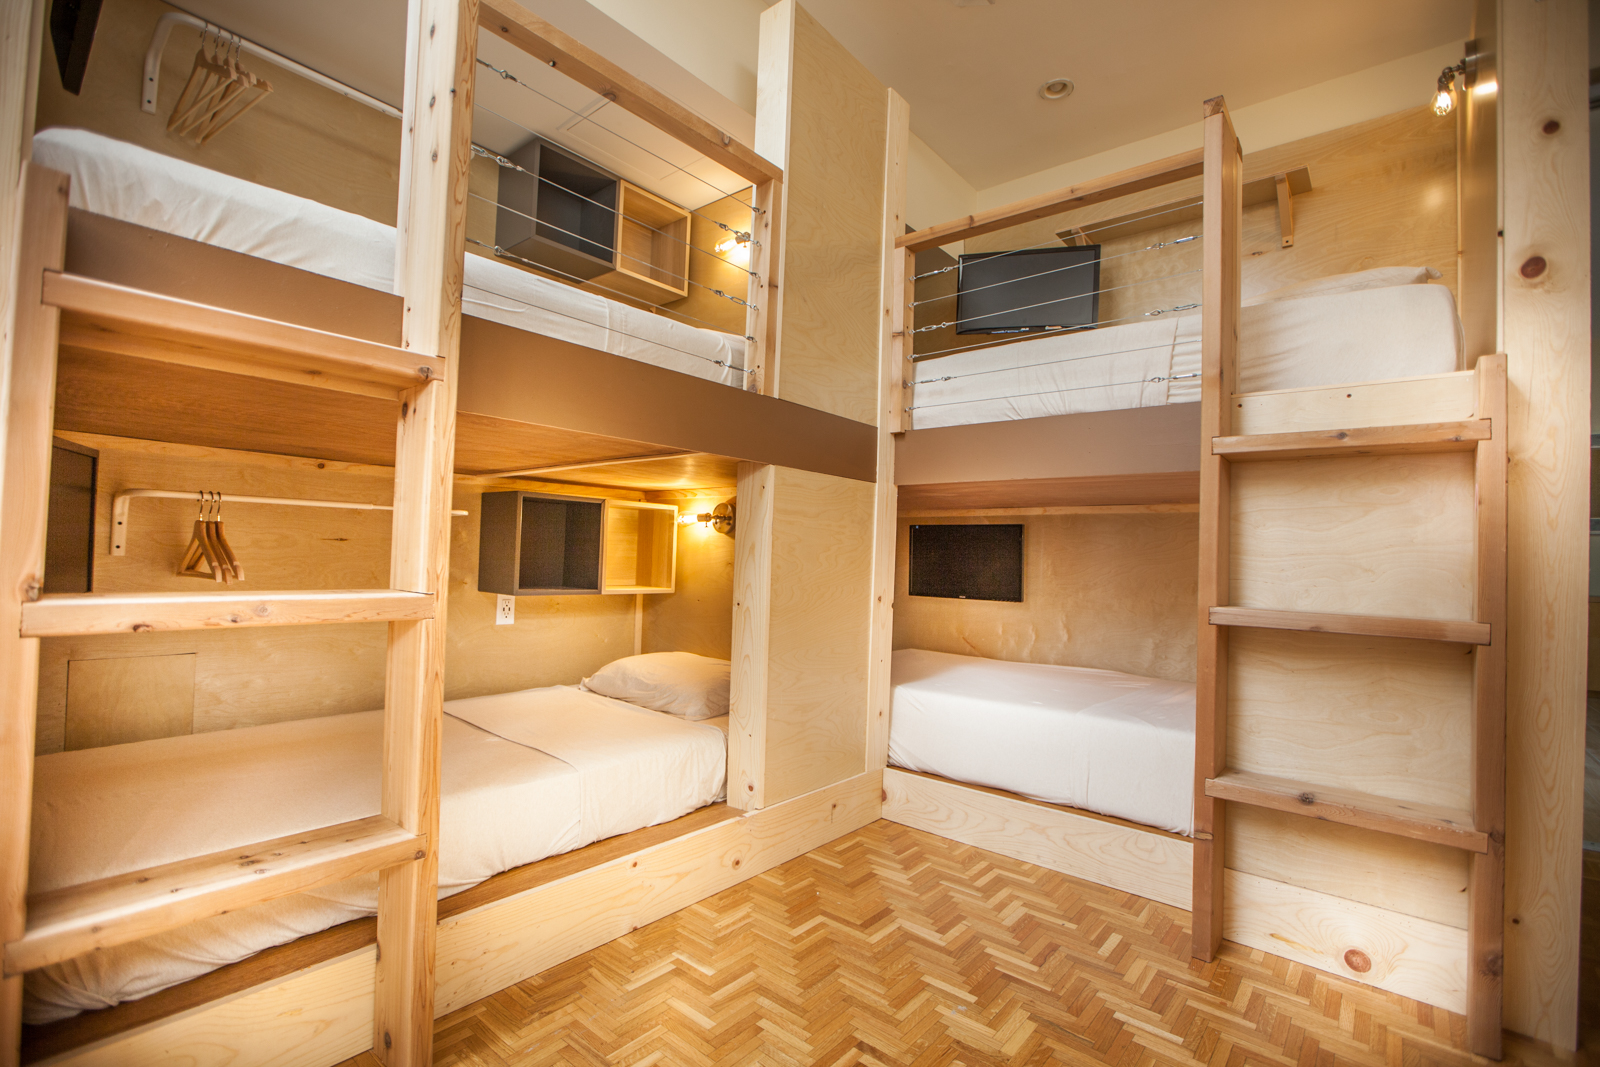 SF's $1,200-per-month bunk bed 'pods' sold out